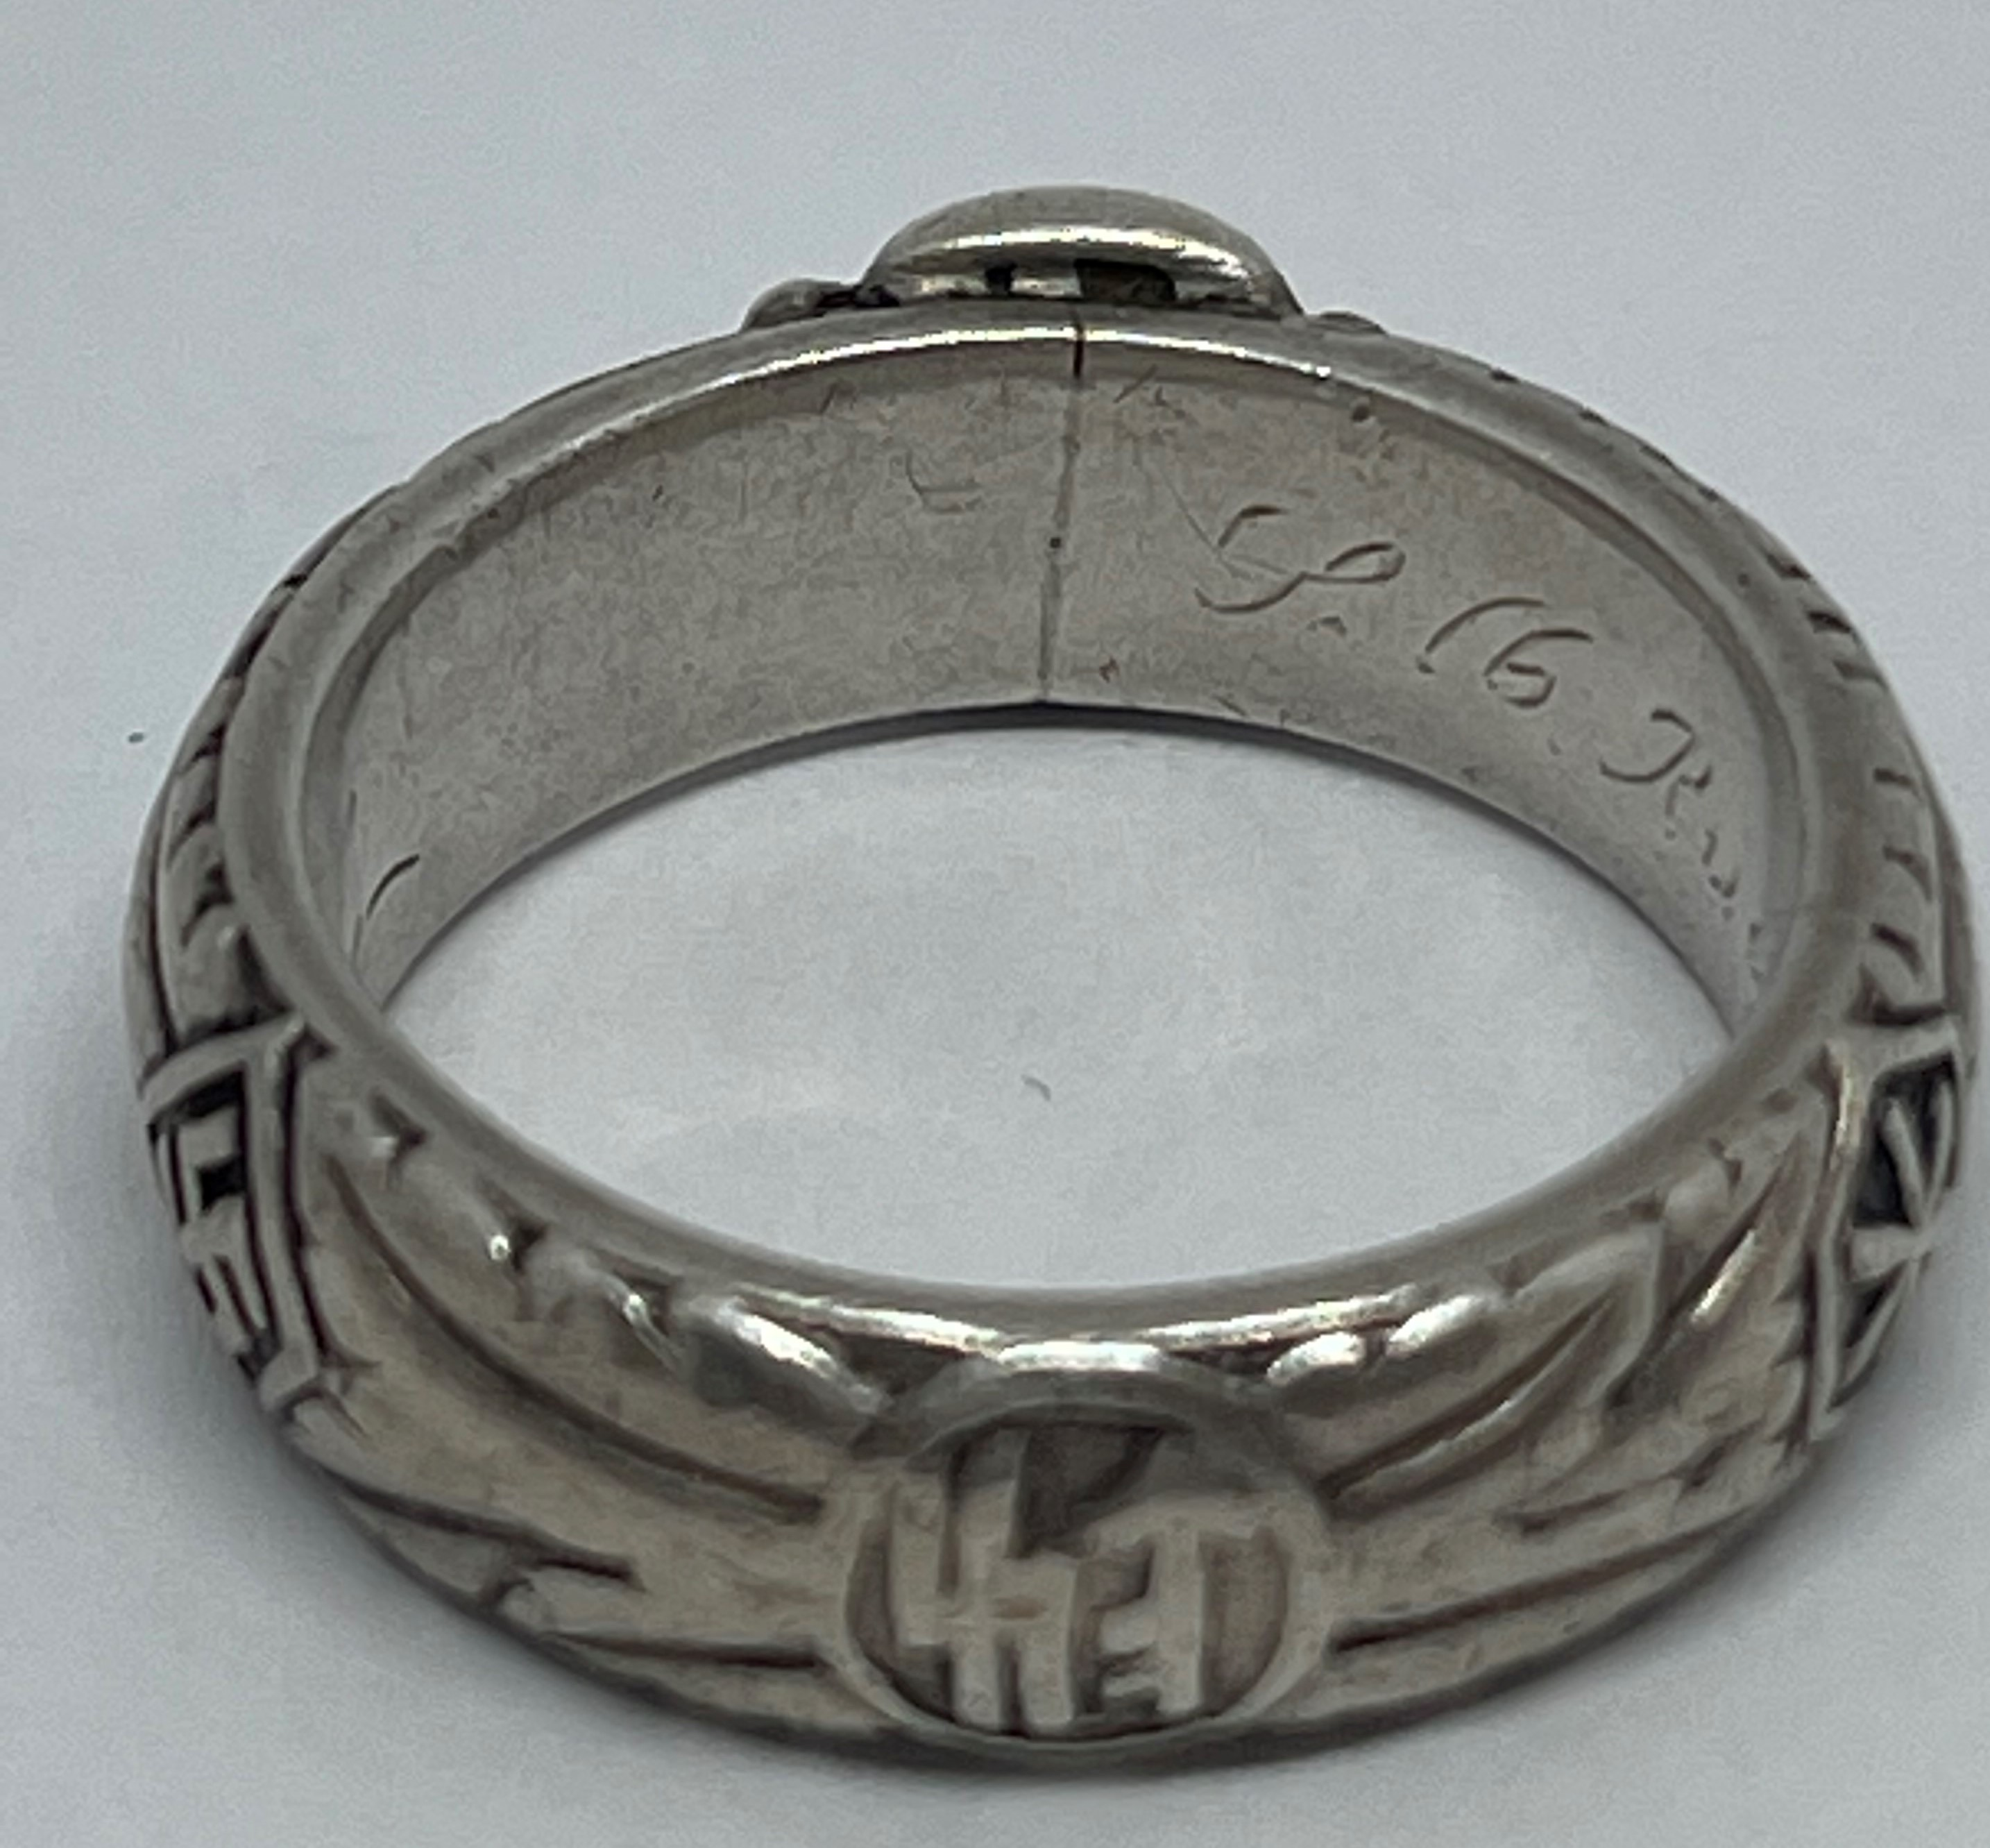 """WW2 Third Reich SS Ehrenring Totenkopf Honour Ring. Inscription engraved to the band """"Slb Rudolph - Image 5 of 5"""